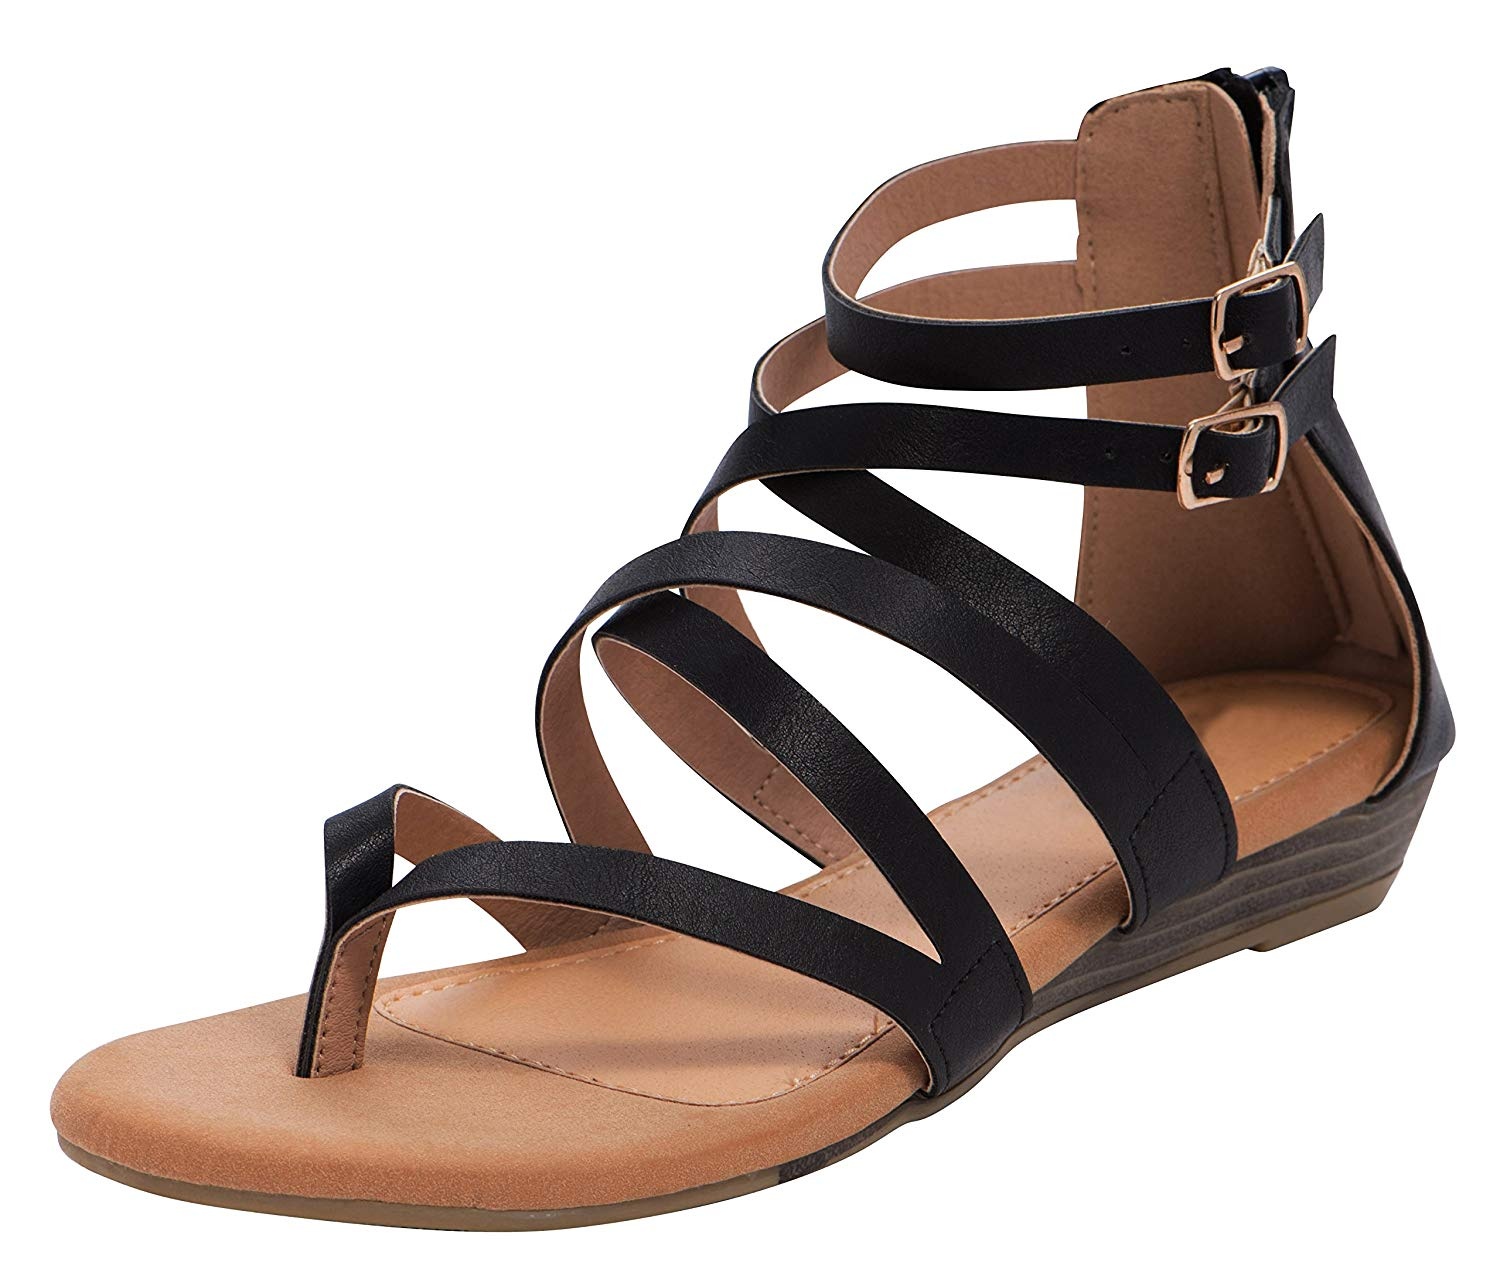 0a2d7ca00ca Get Quotations · Cambridge Select Women s Strappy Crisscross Open Toe  Buckled Ankle Low Wedge Sandal